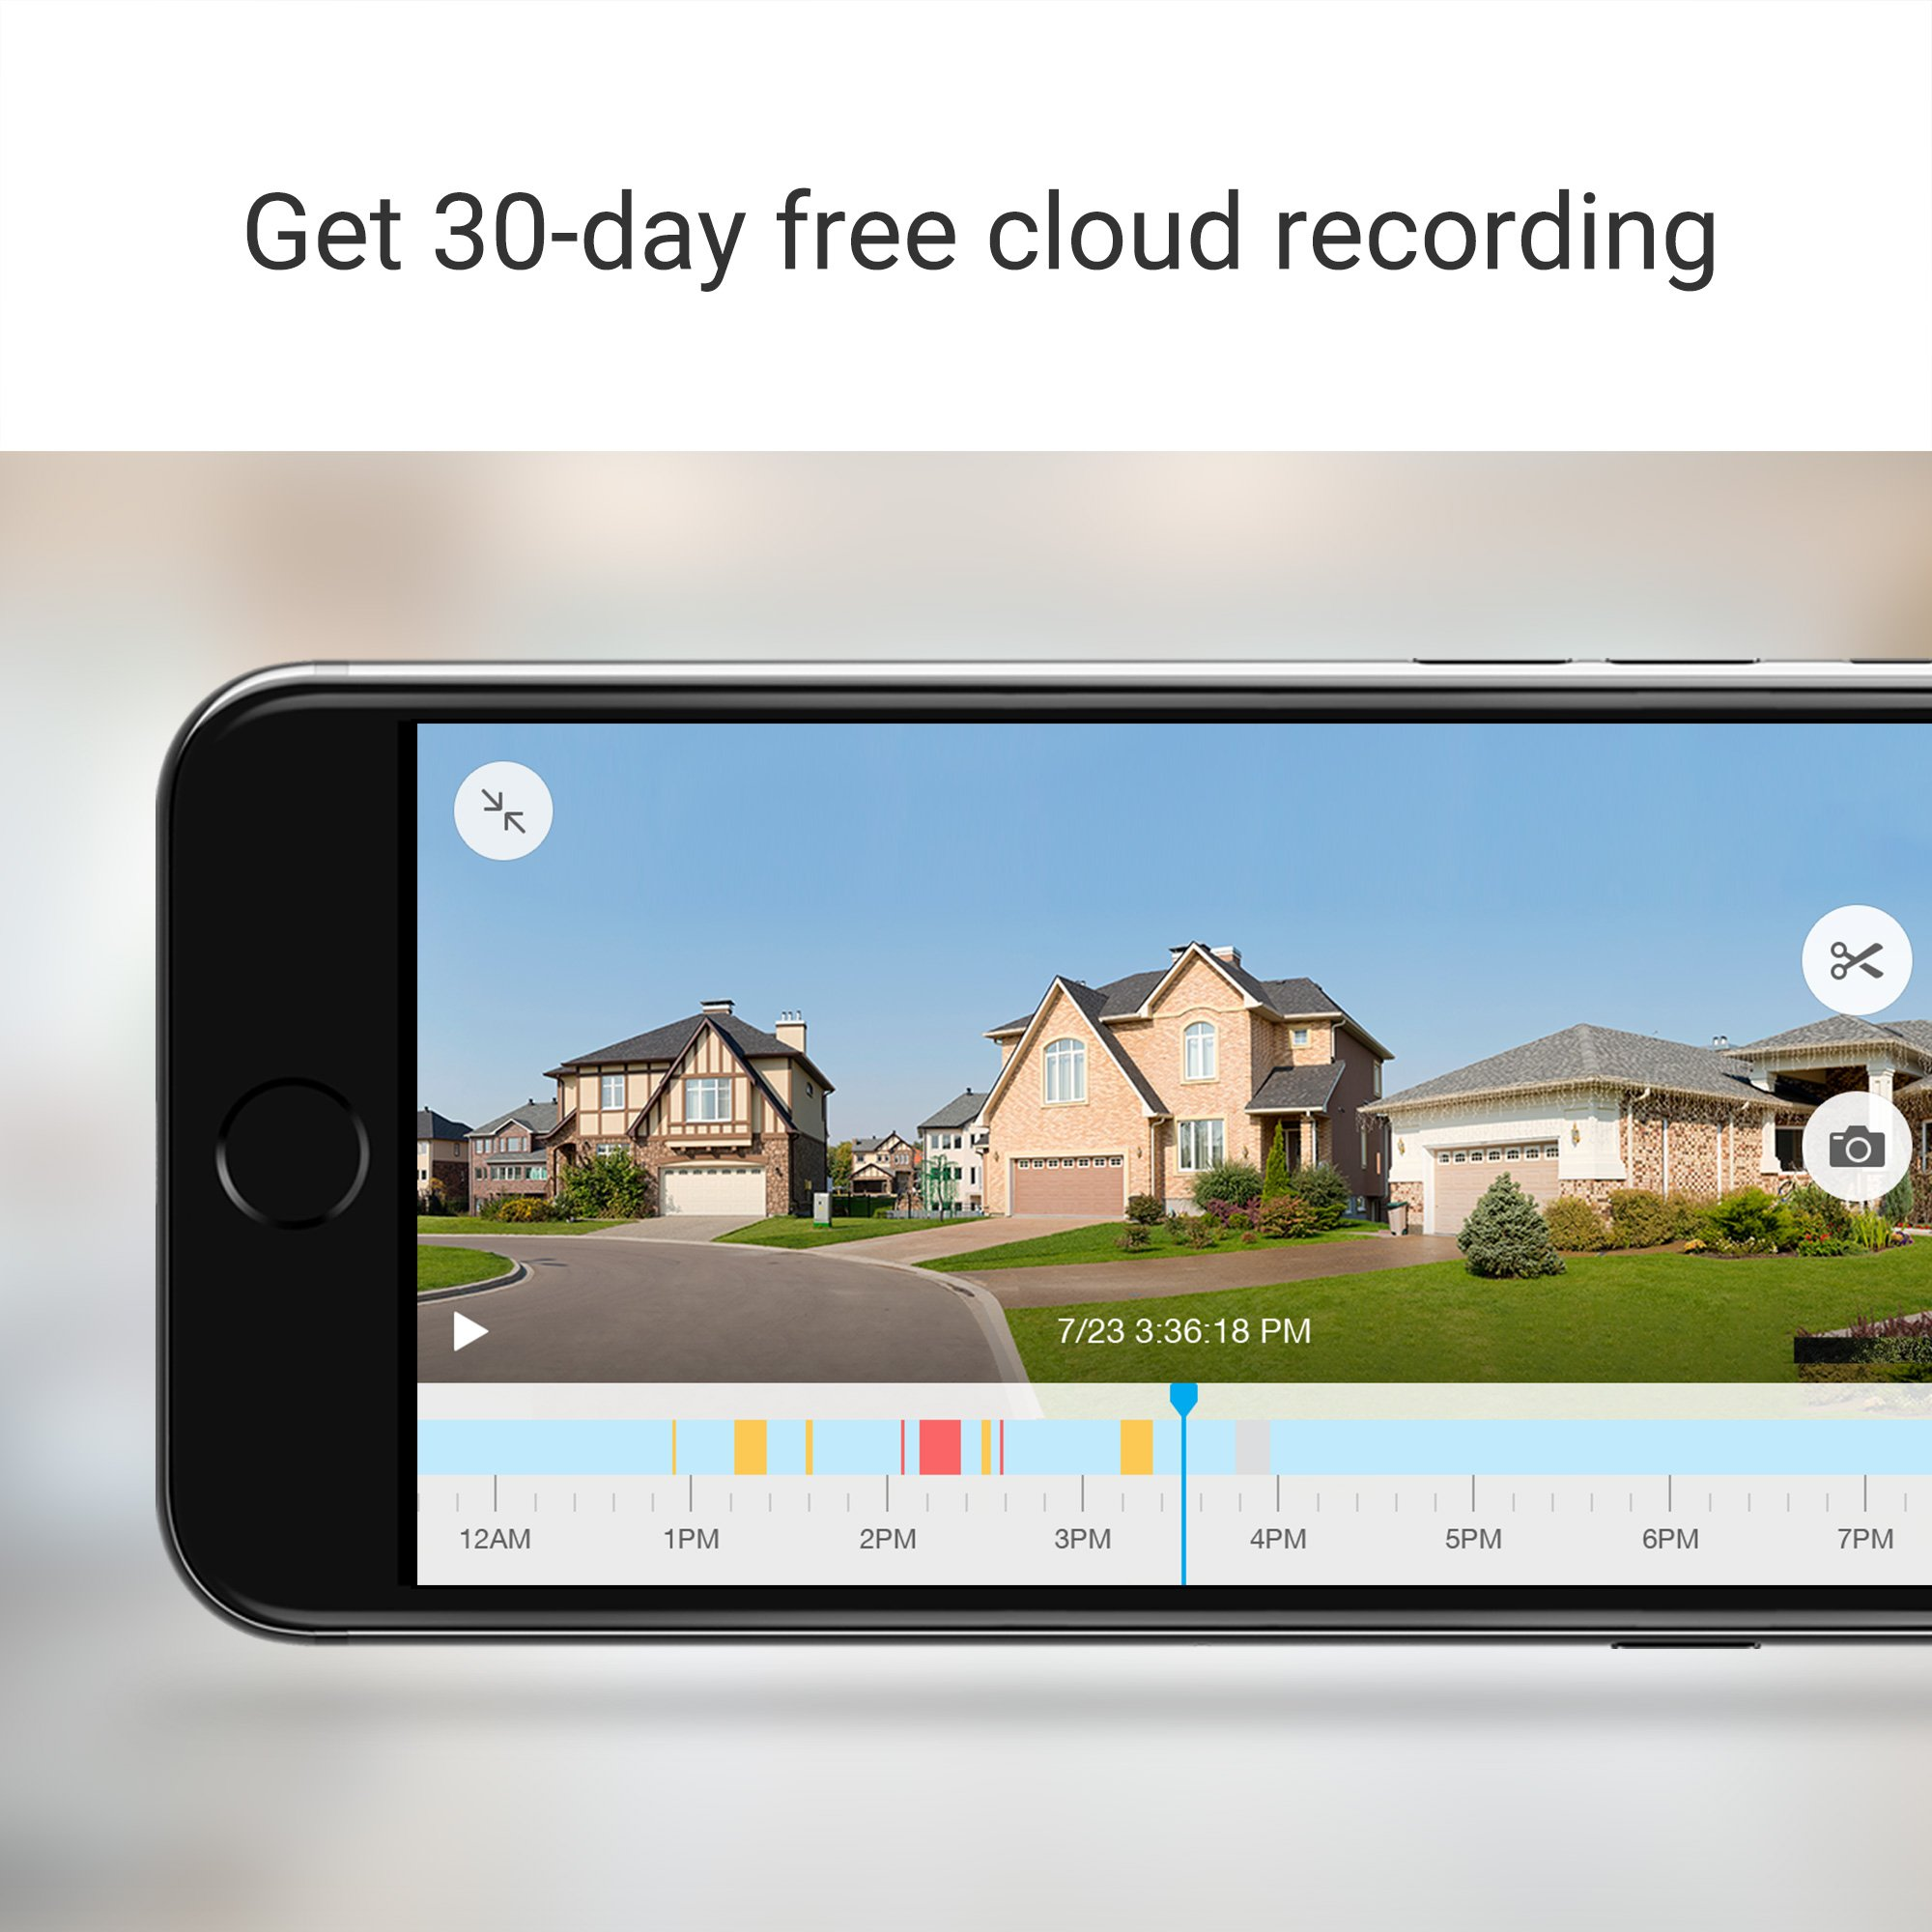 Zmodo Greet Select WiFi Video Doorbell, 1080p Full HD Camera, Free 30-Day Cloud Service, Works with Alexa by Zmodo (Image #5)